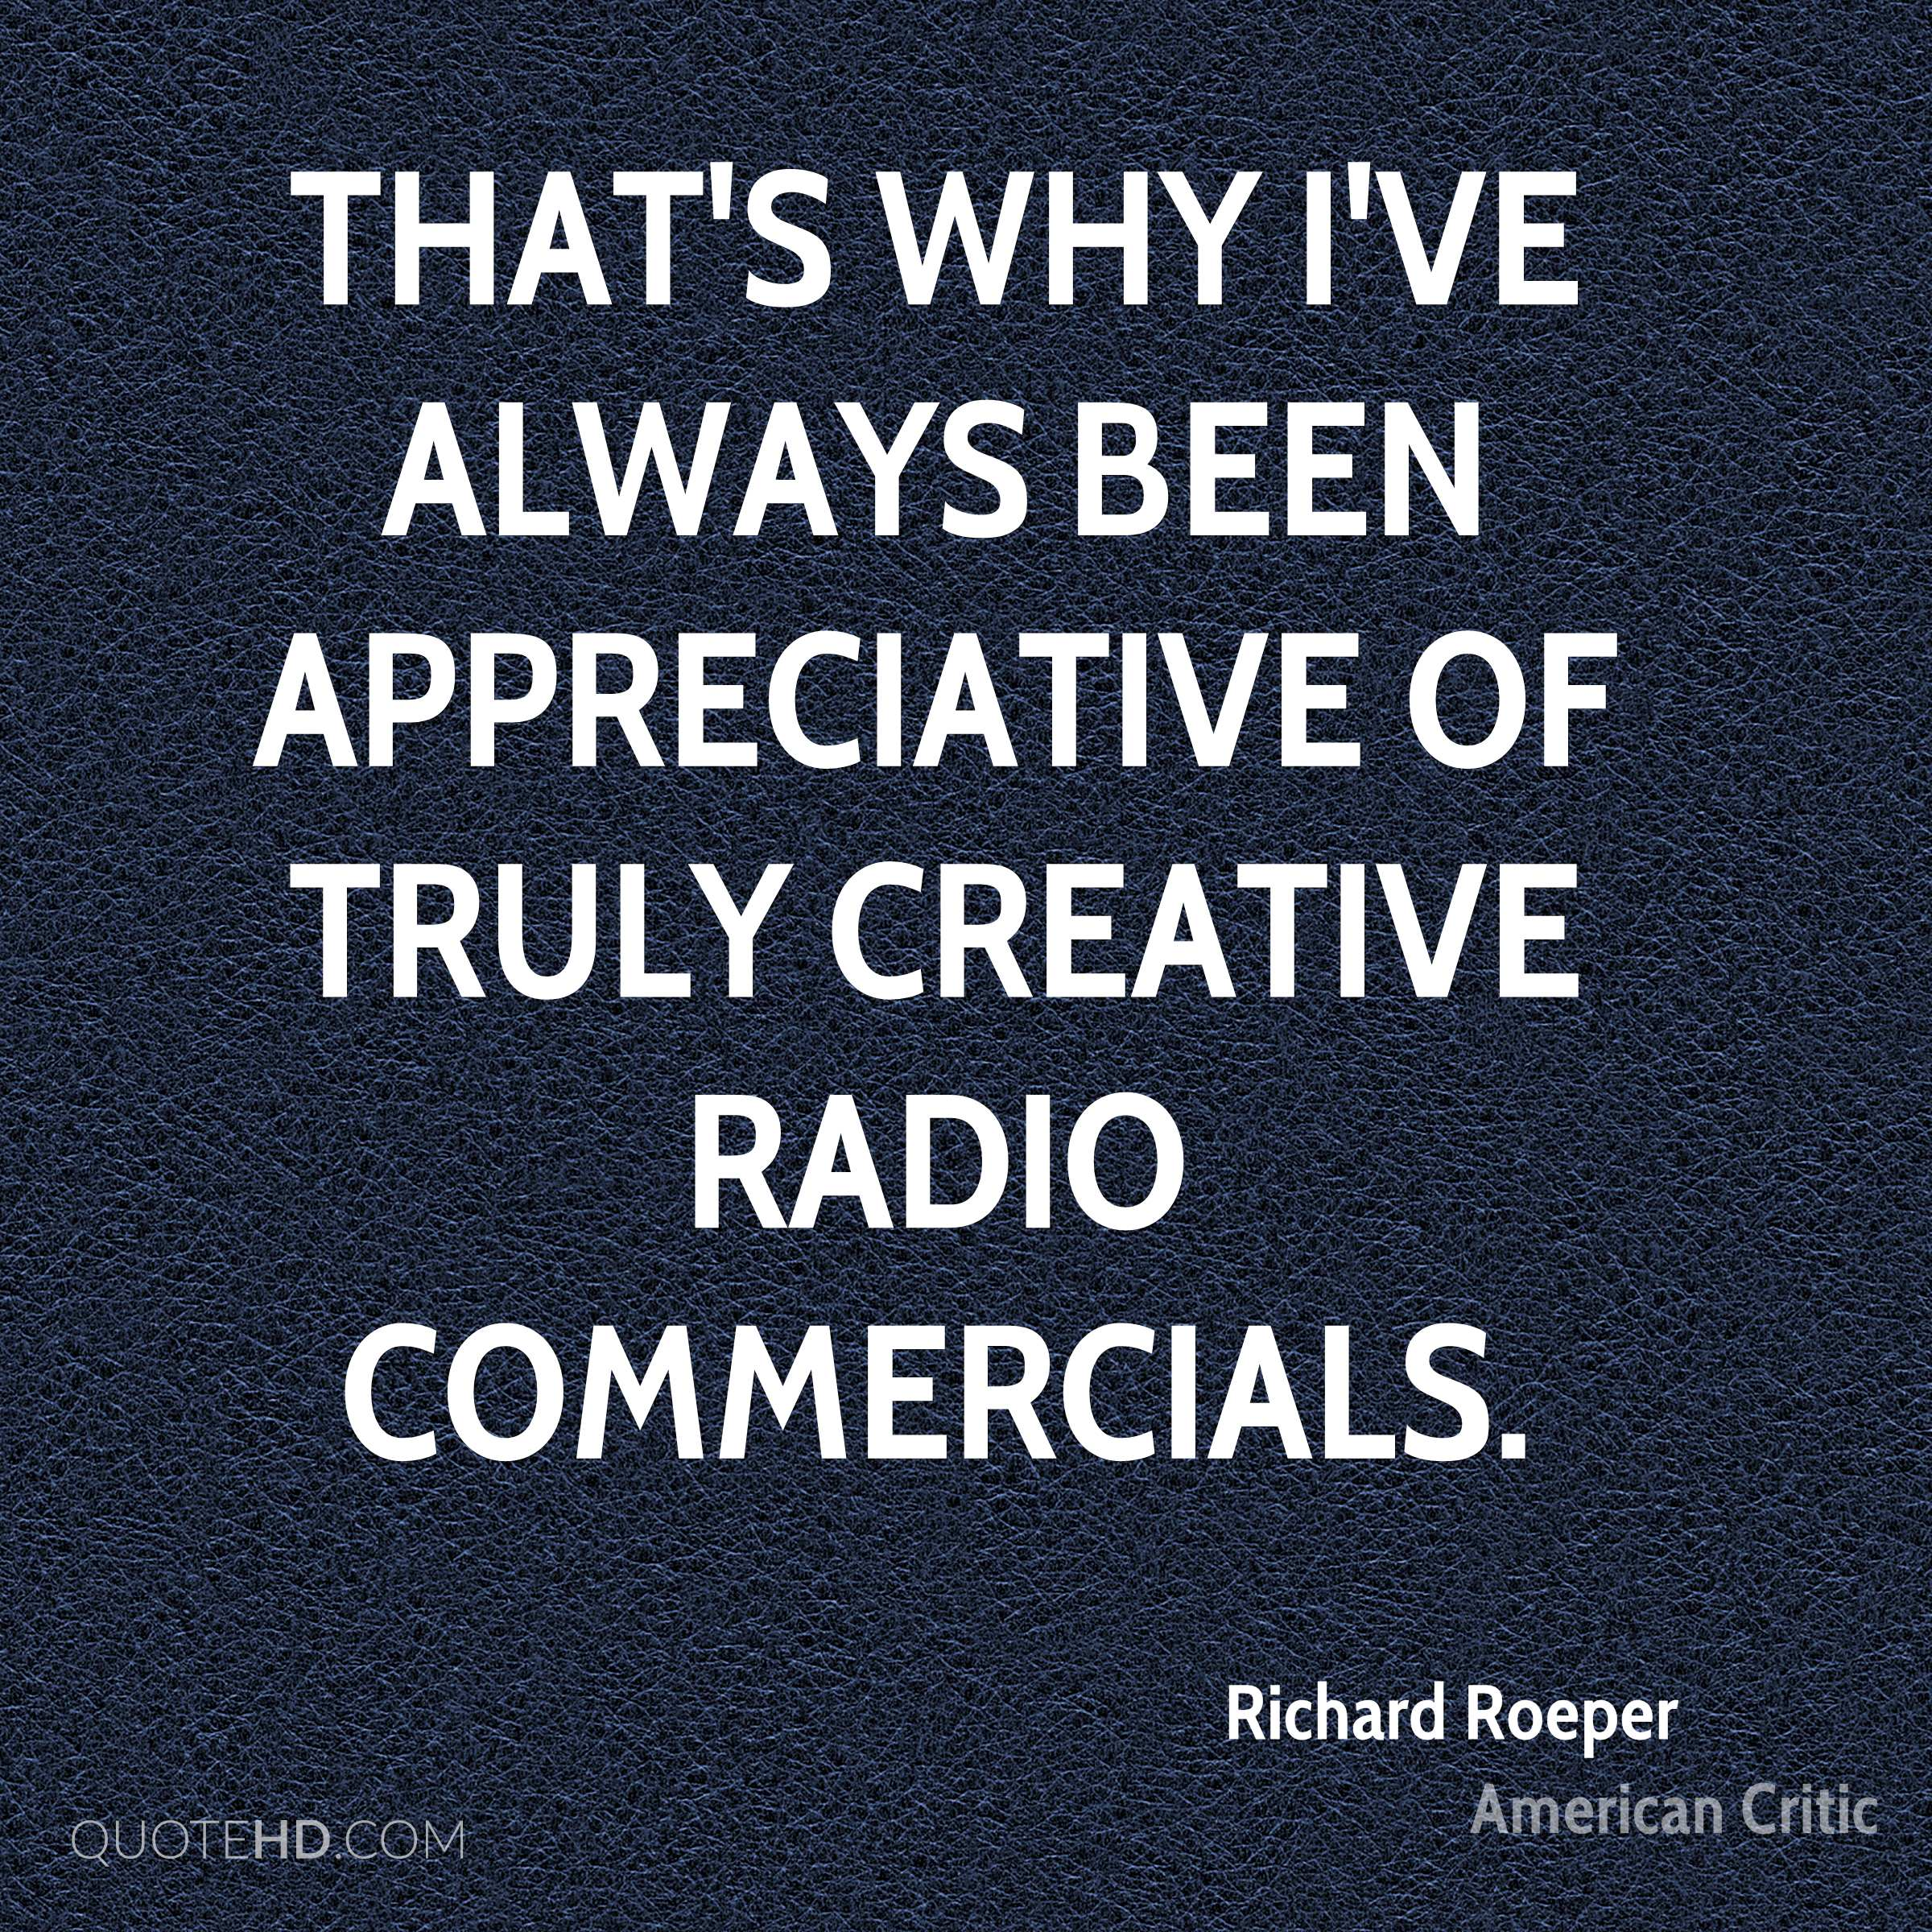 That's why I've always been appreciative of truly creative radio commercials.